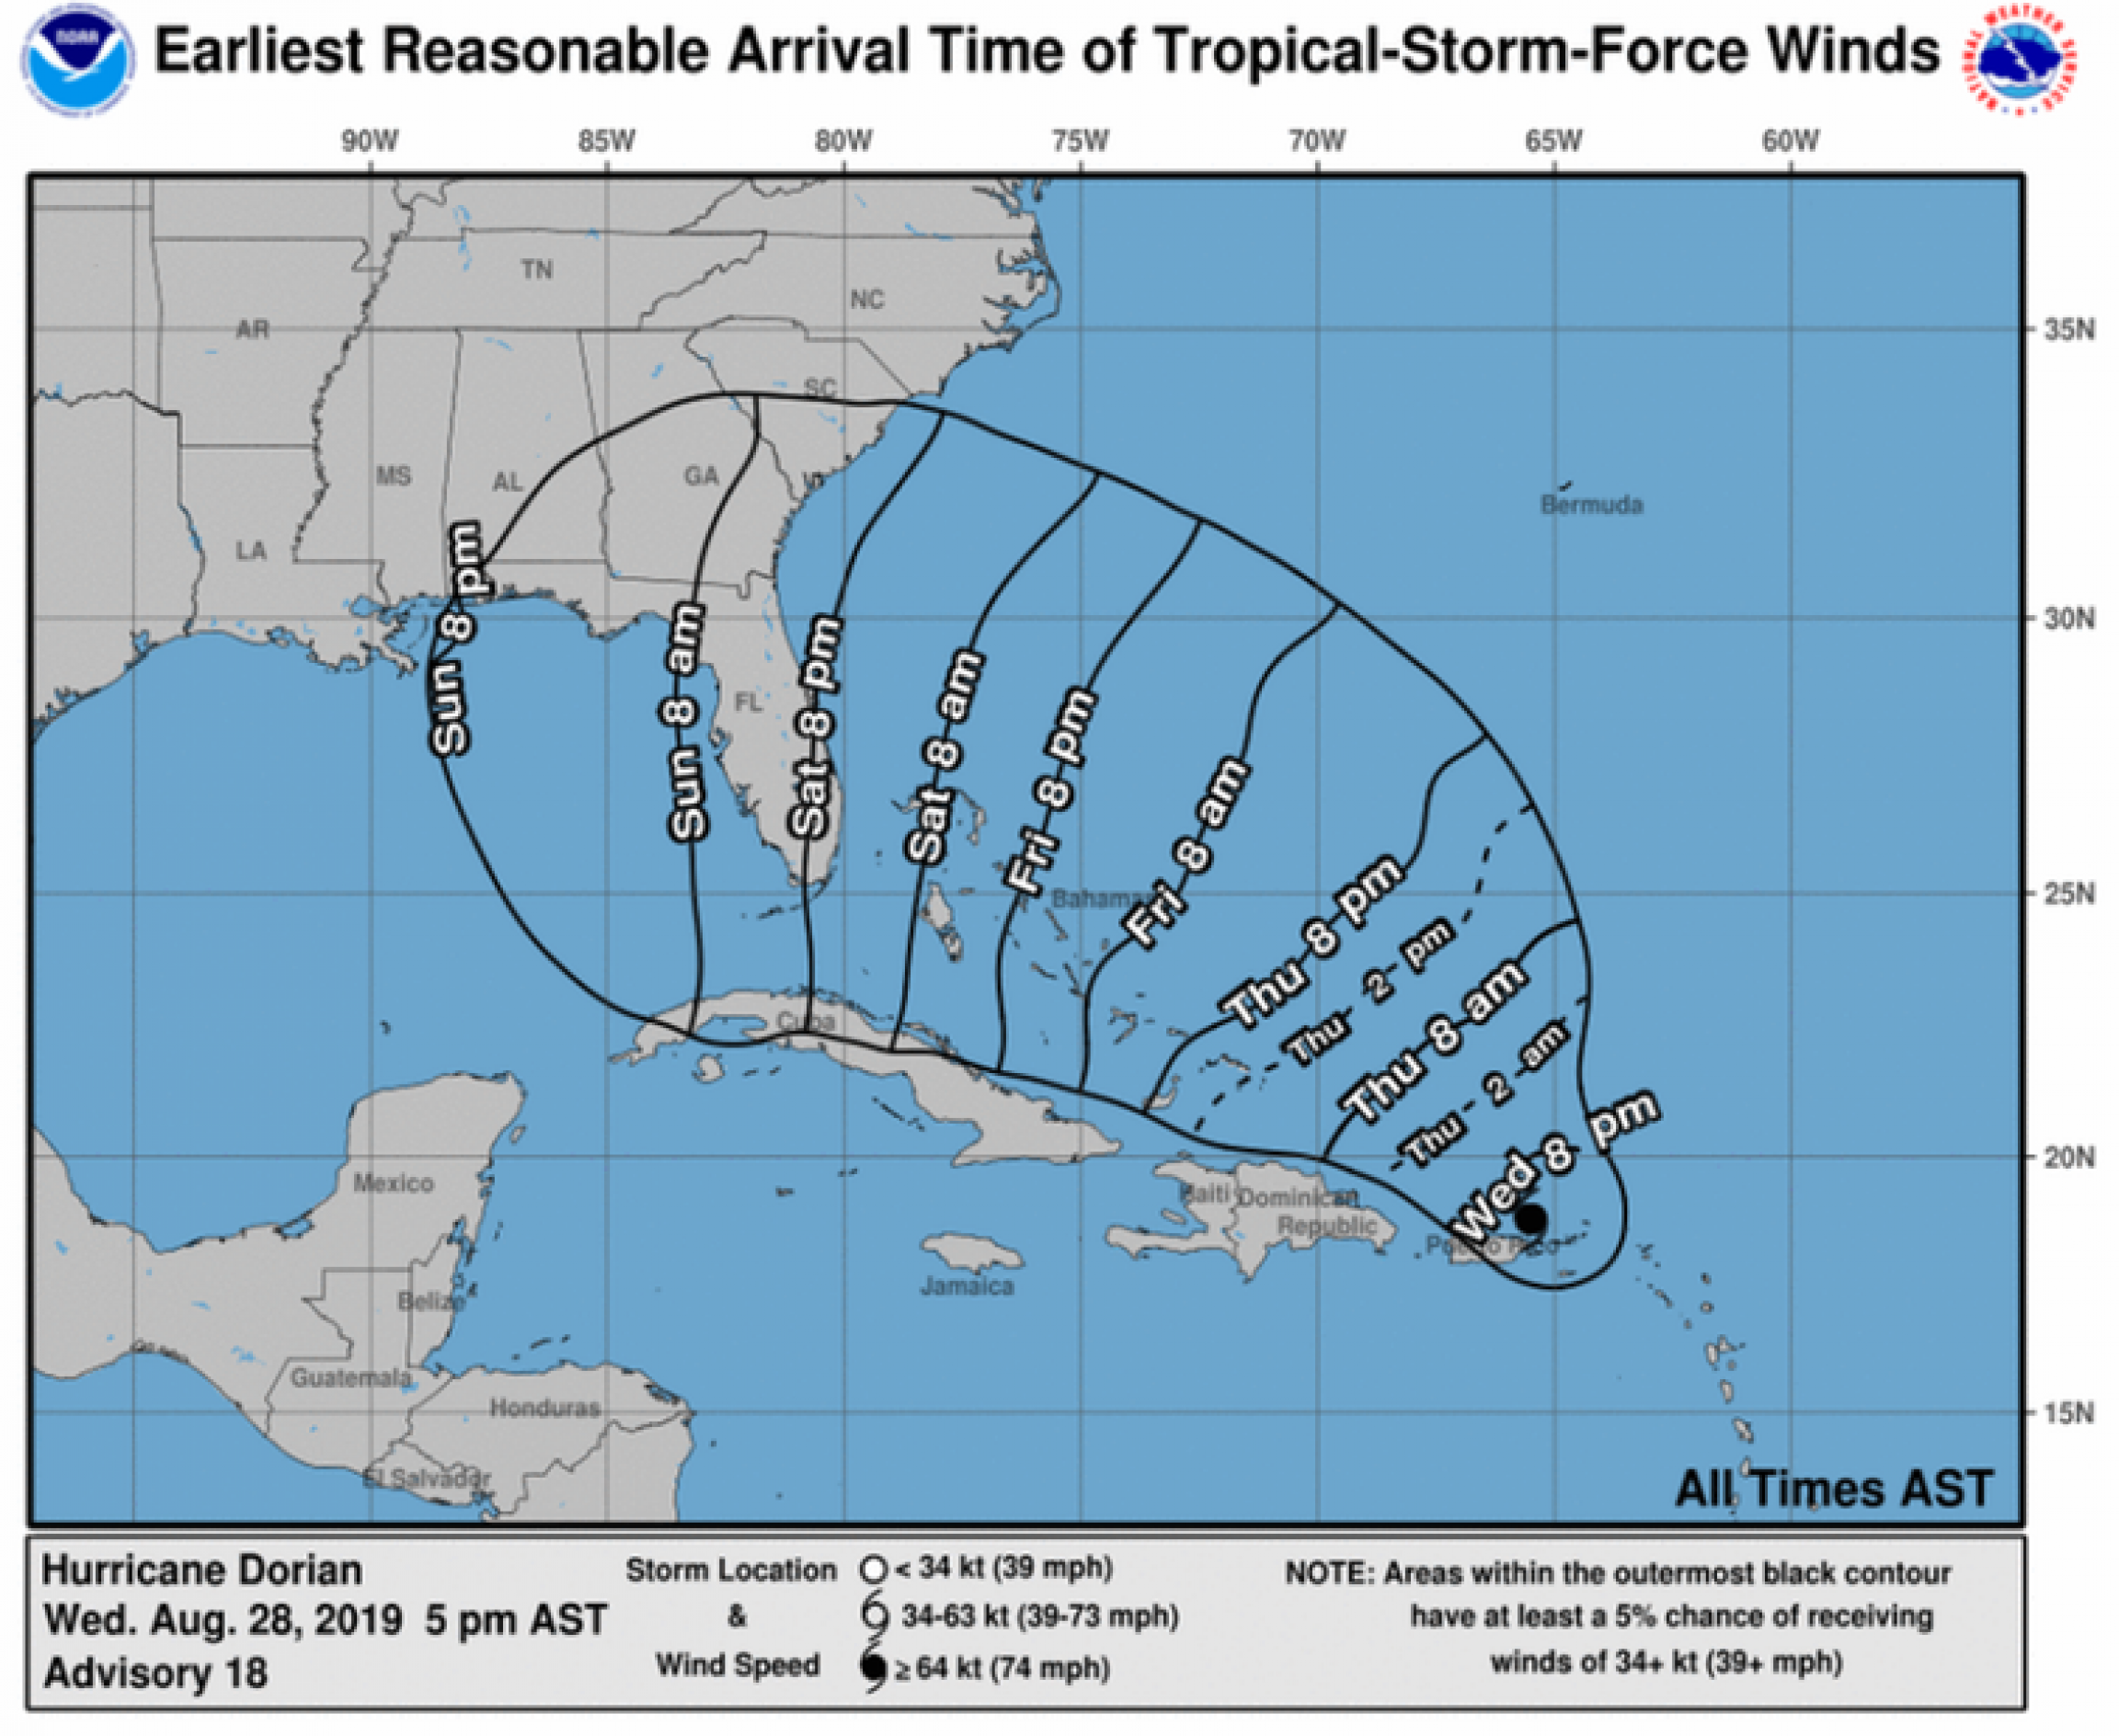 A map of the hurricane's projected location by time.